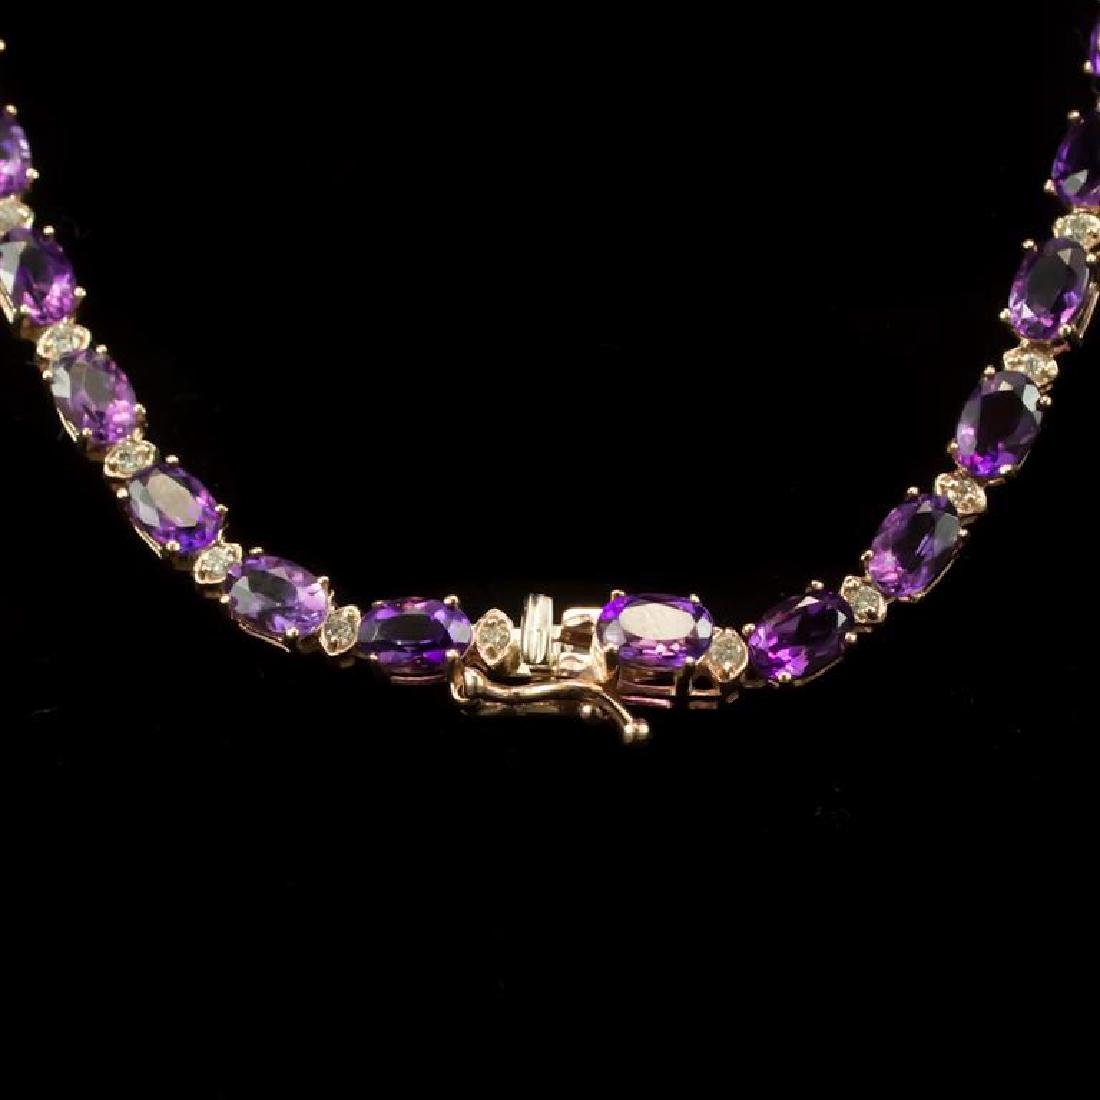 14K Gold 31.07ct Amethyst 2.45ct Diamond Necklace - 3